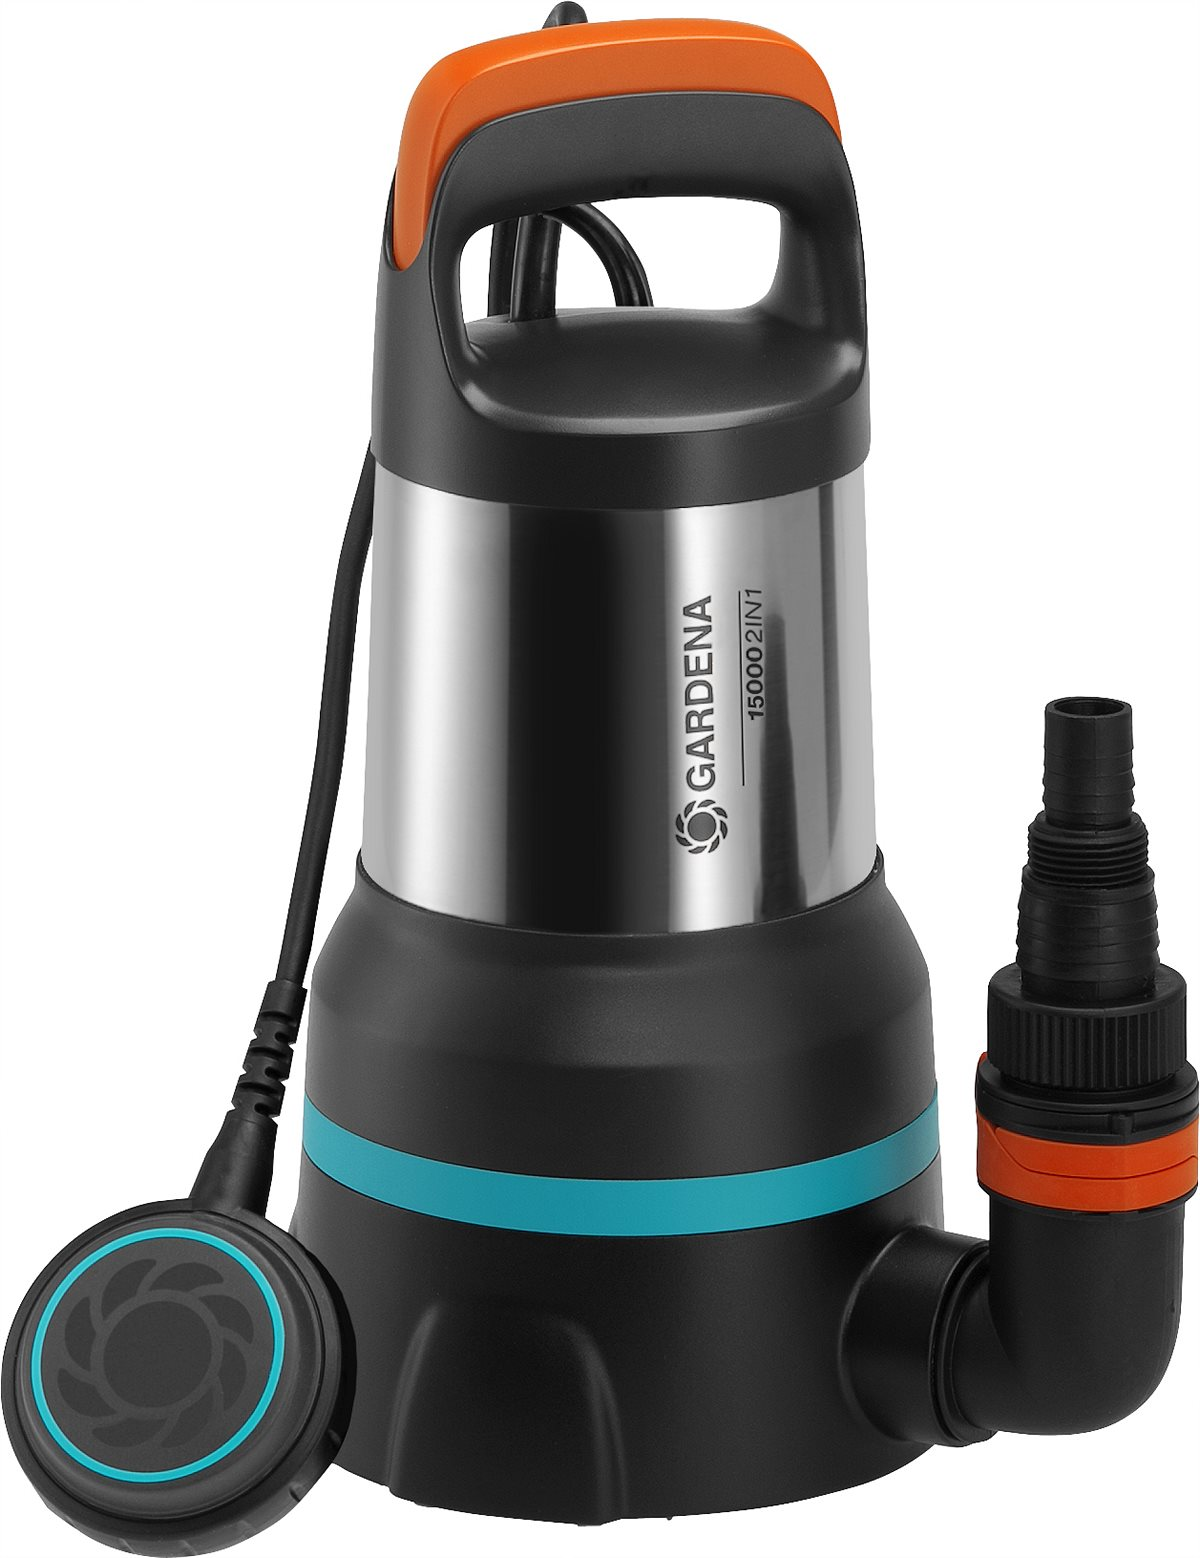 GARDENA 2in1 ClearDirty Water Submersible Pump 15000